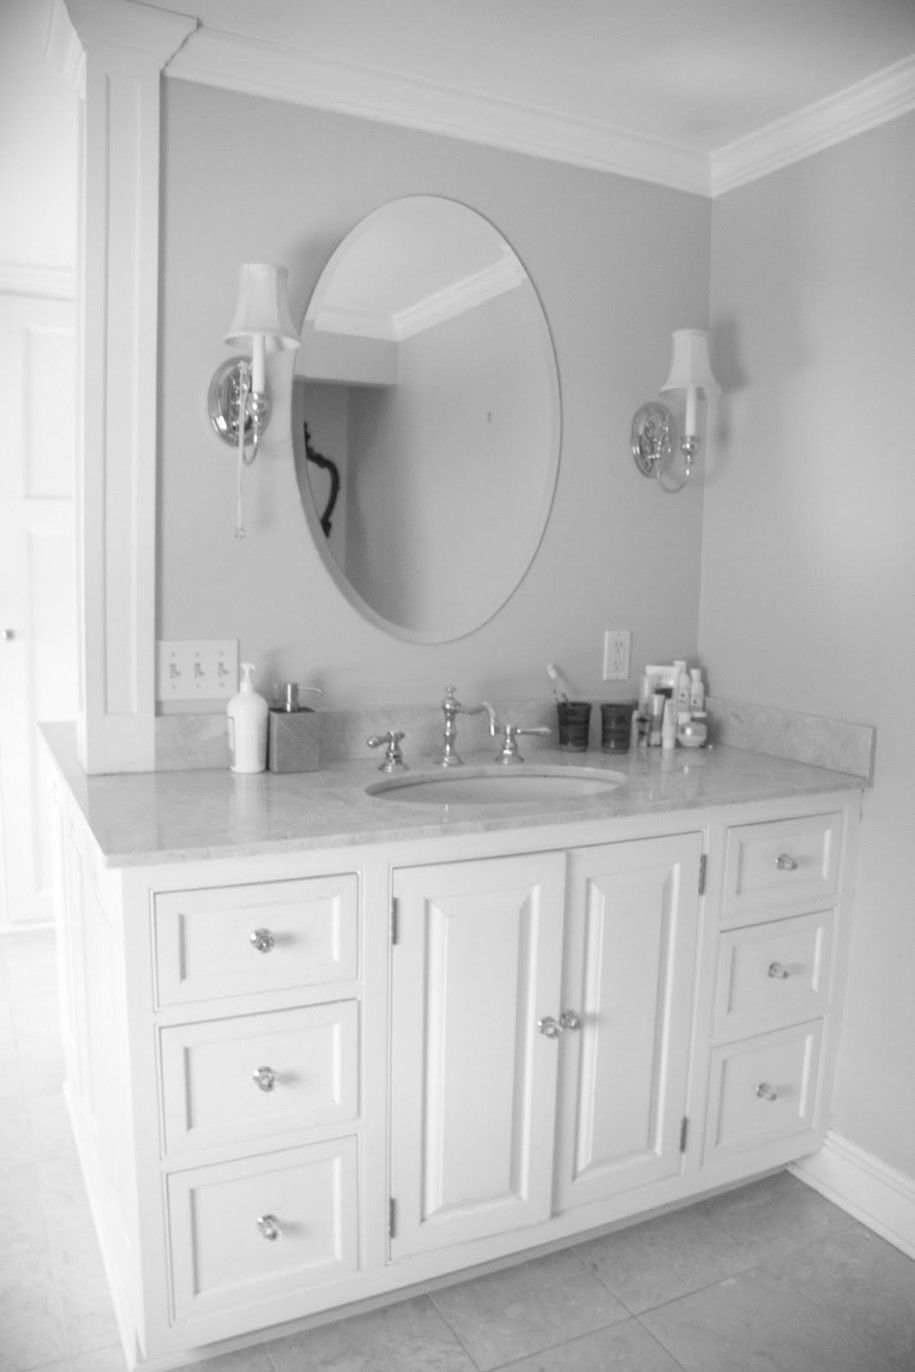 Precious Bathroom Vanities Lowes Crafted Of Wood In High Gloss Awesome Lowes Bathroom Remodel Ideas Decorating Design